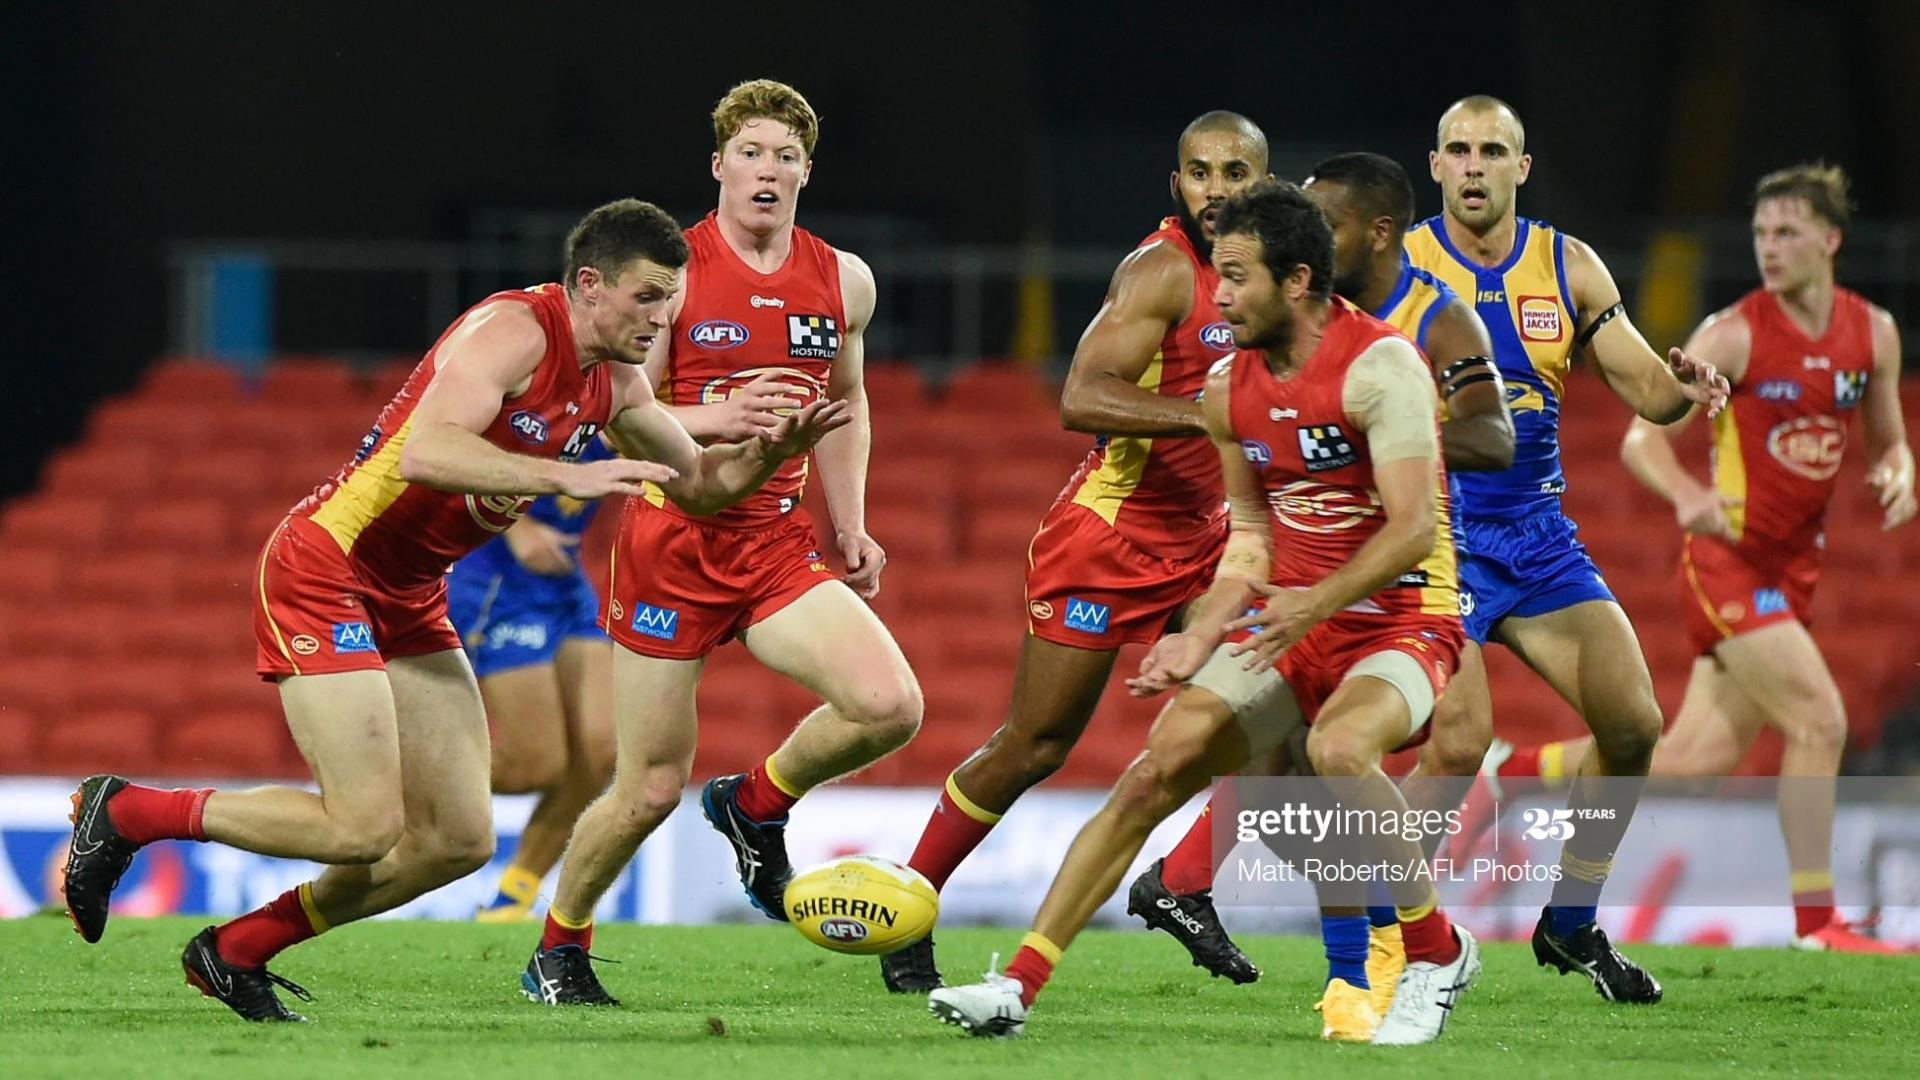 Hanley attacking the footy. Photo: Getty Images.